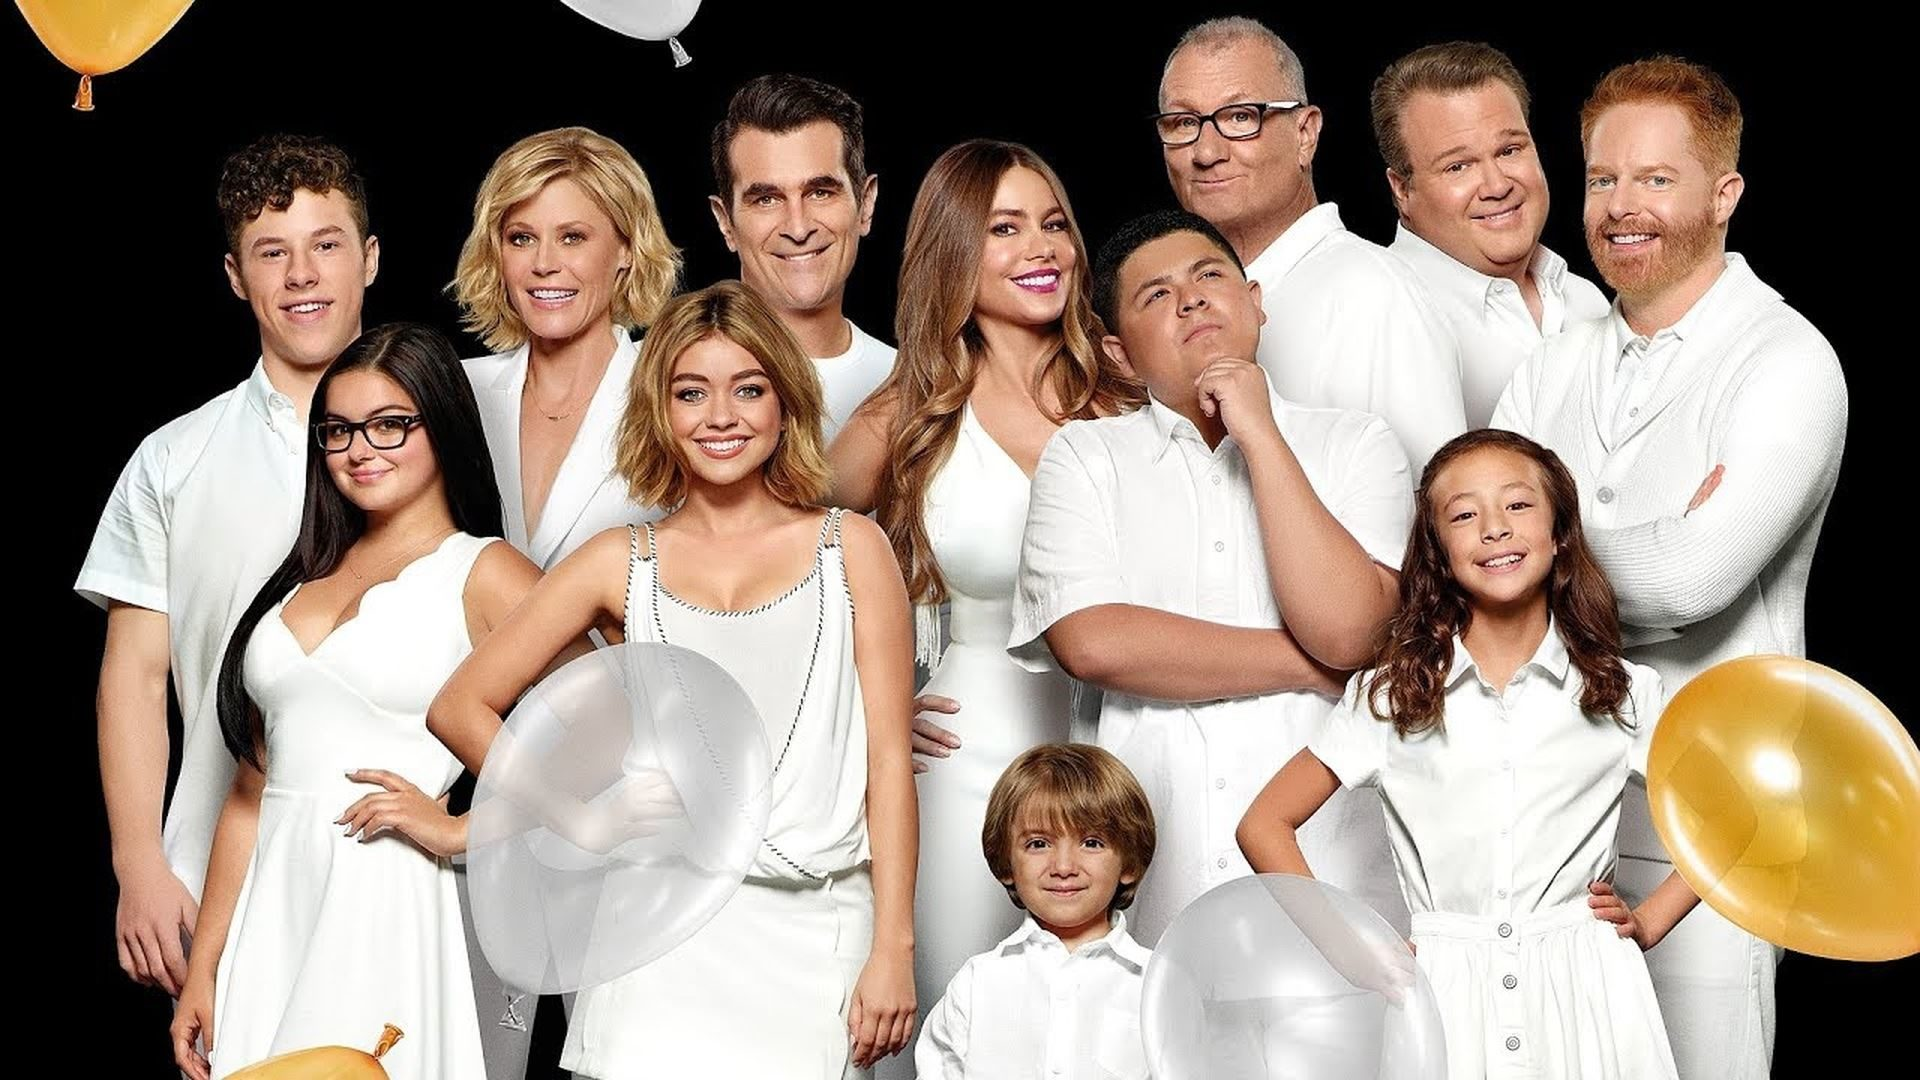 modern family spin-off